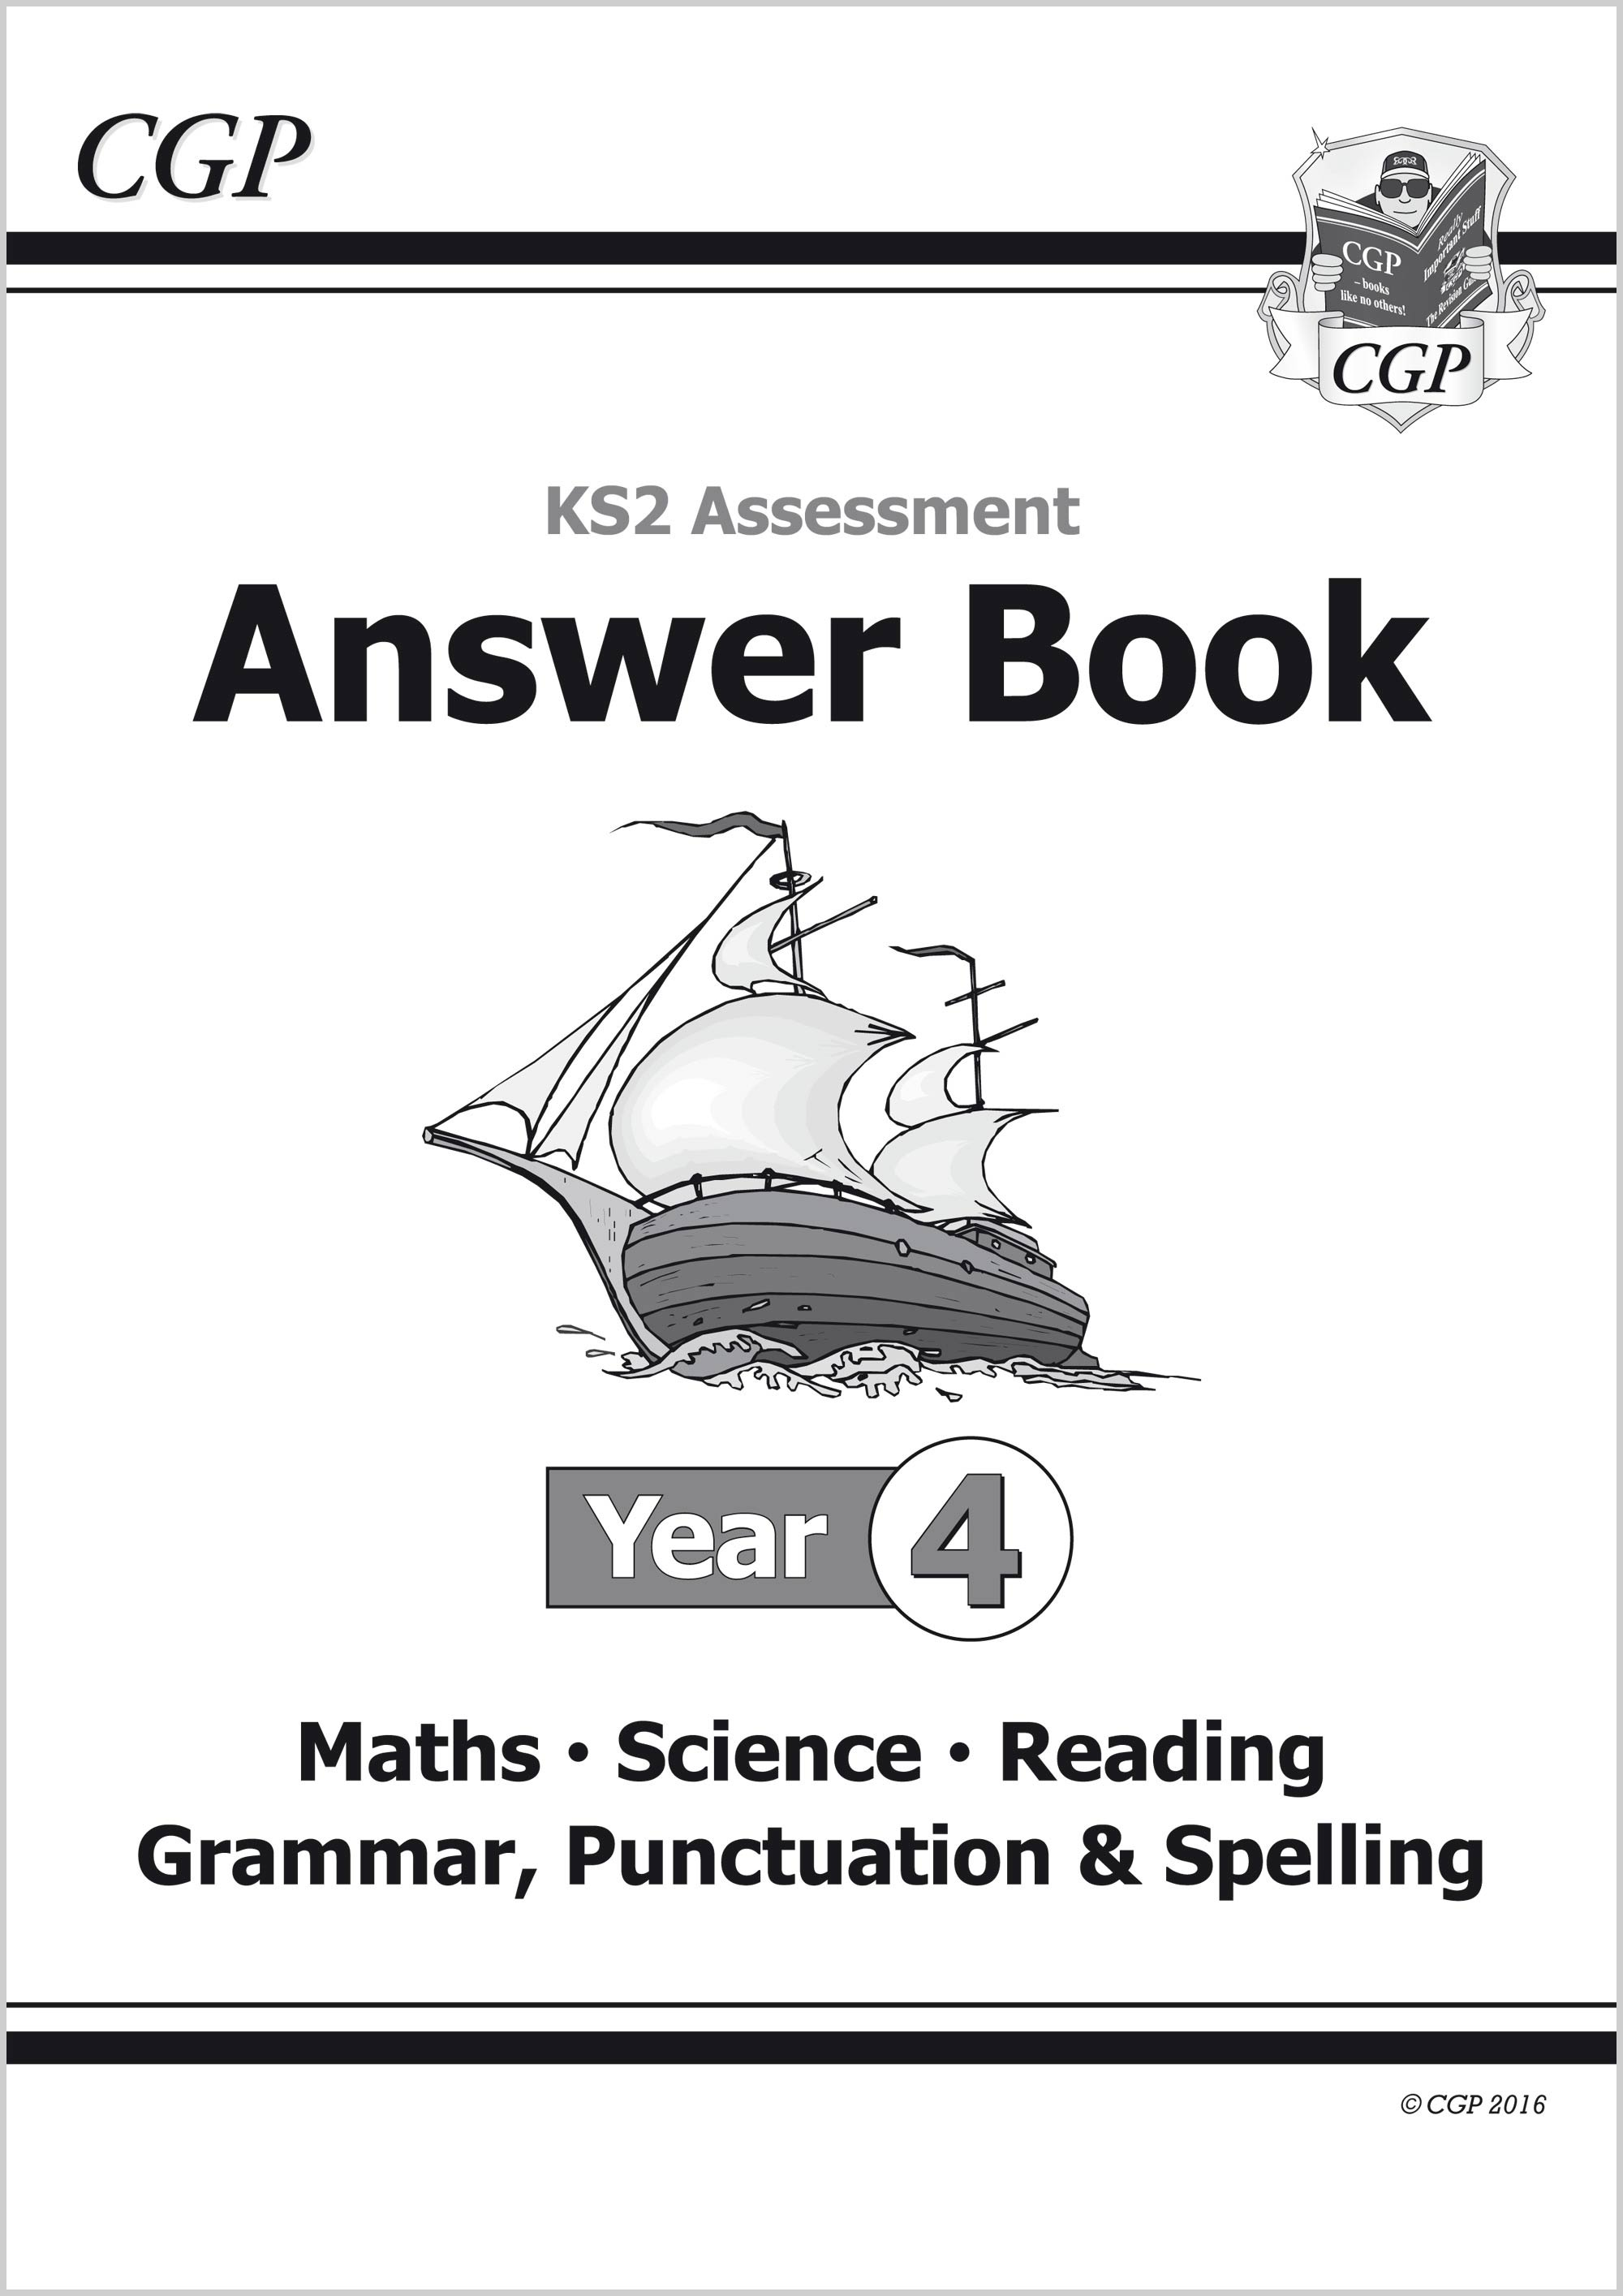 EMS4A21 - KS2 Assessment: Complete Answer Book - Year 4 Tests